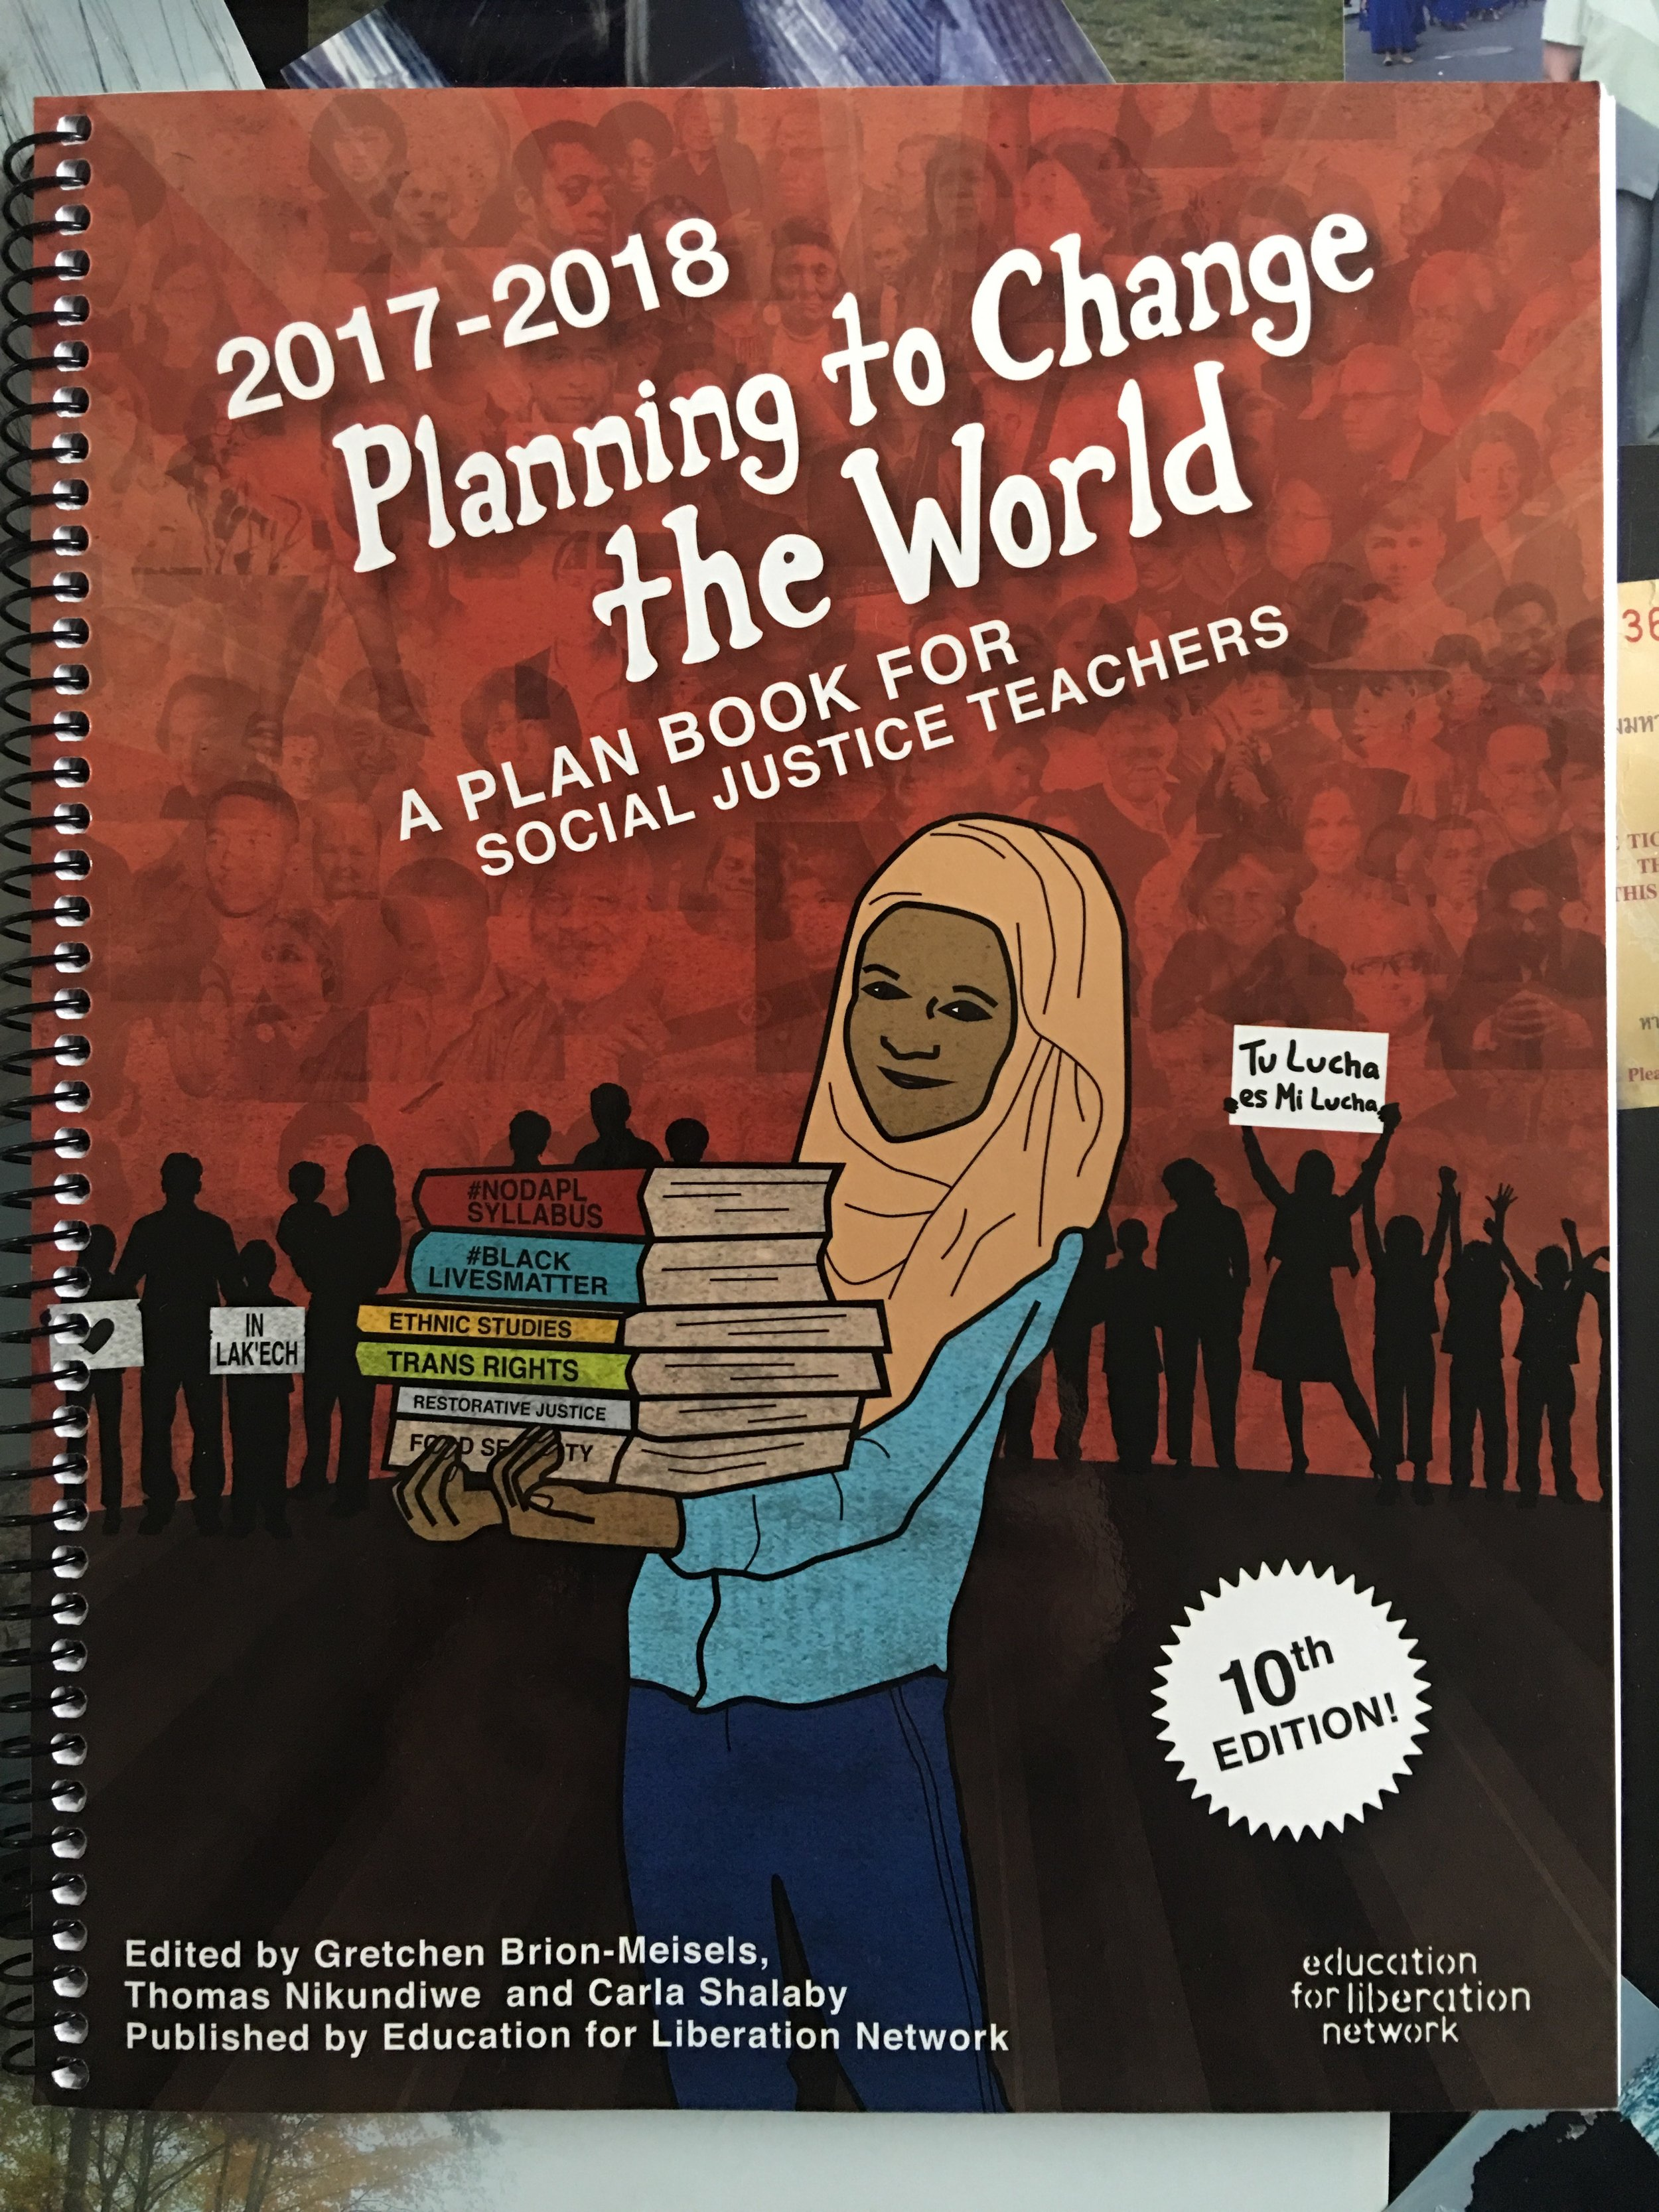 My favorite plan book! Plan Book for Social Justice Teachers available as pdf download  here .